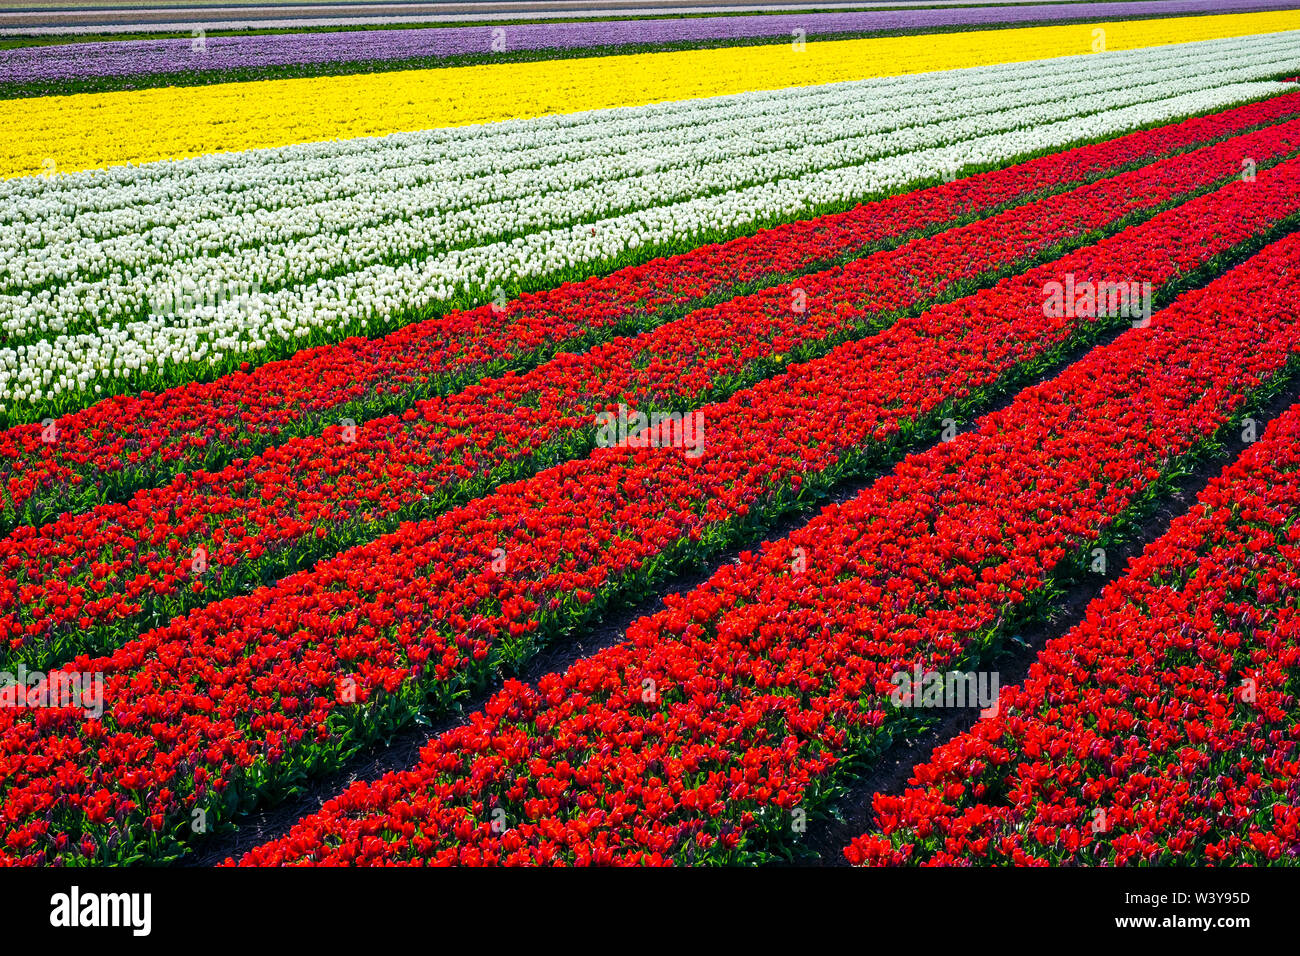 Netherlands, North Holland, Burgerbrug. Bright red tulip field in spring. - Stock Image